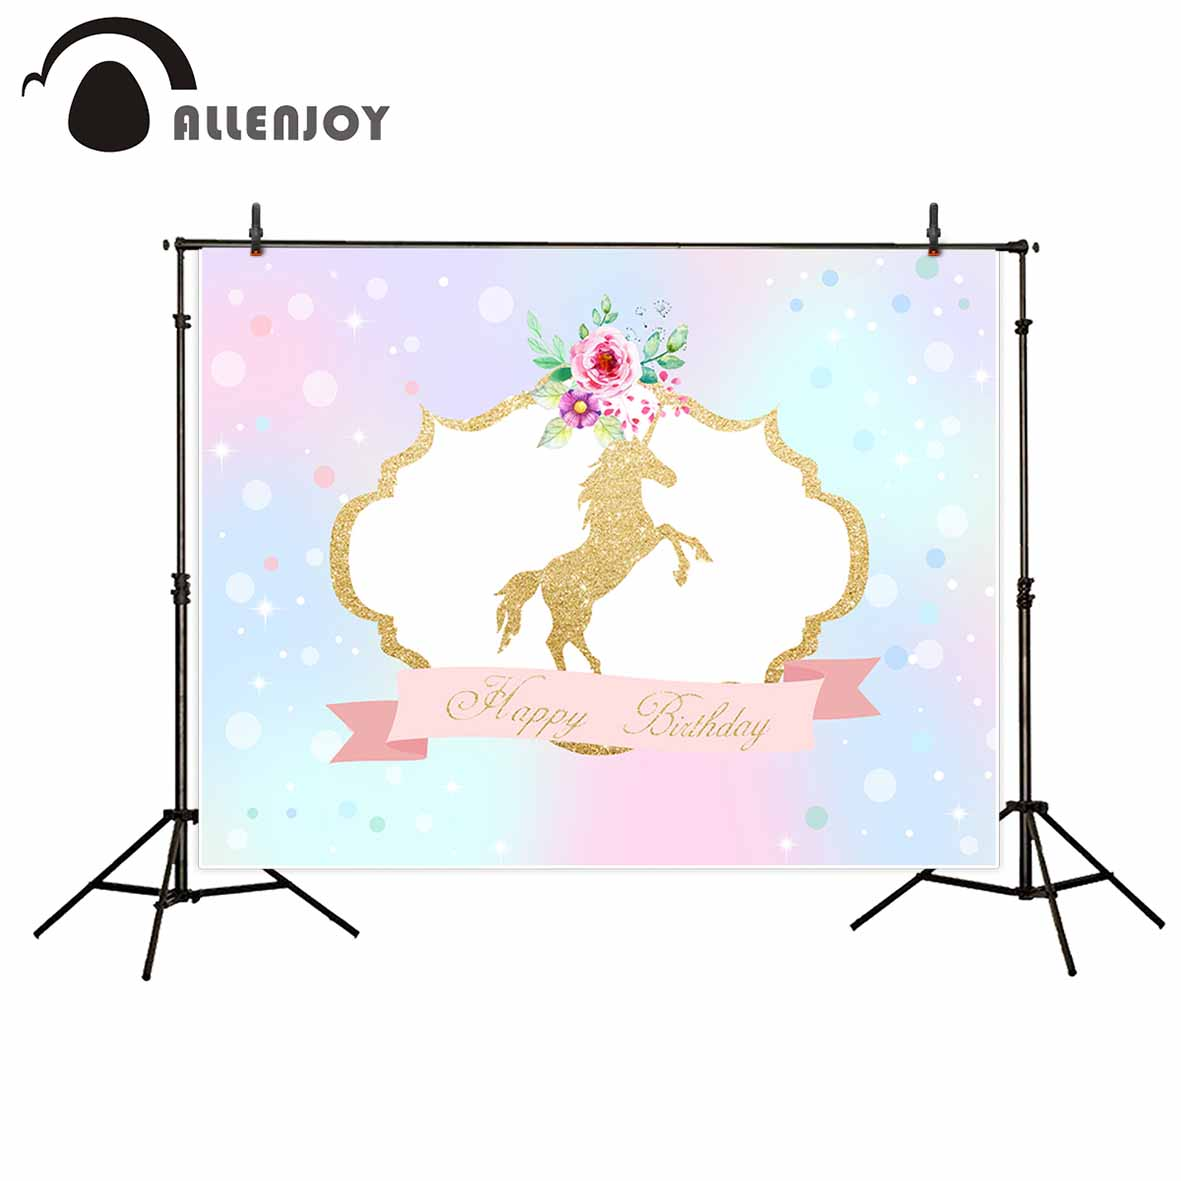 Allenjoy photography backdrops Golden unicorn flowers birthday background colorful bubbles photo backdrop for kids photocall allenjoy studio photo background vintage colorful flags birthday blue floor photocall vinyl backdrops for photography